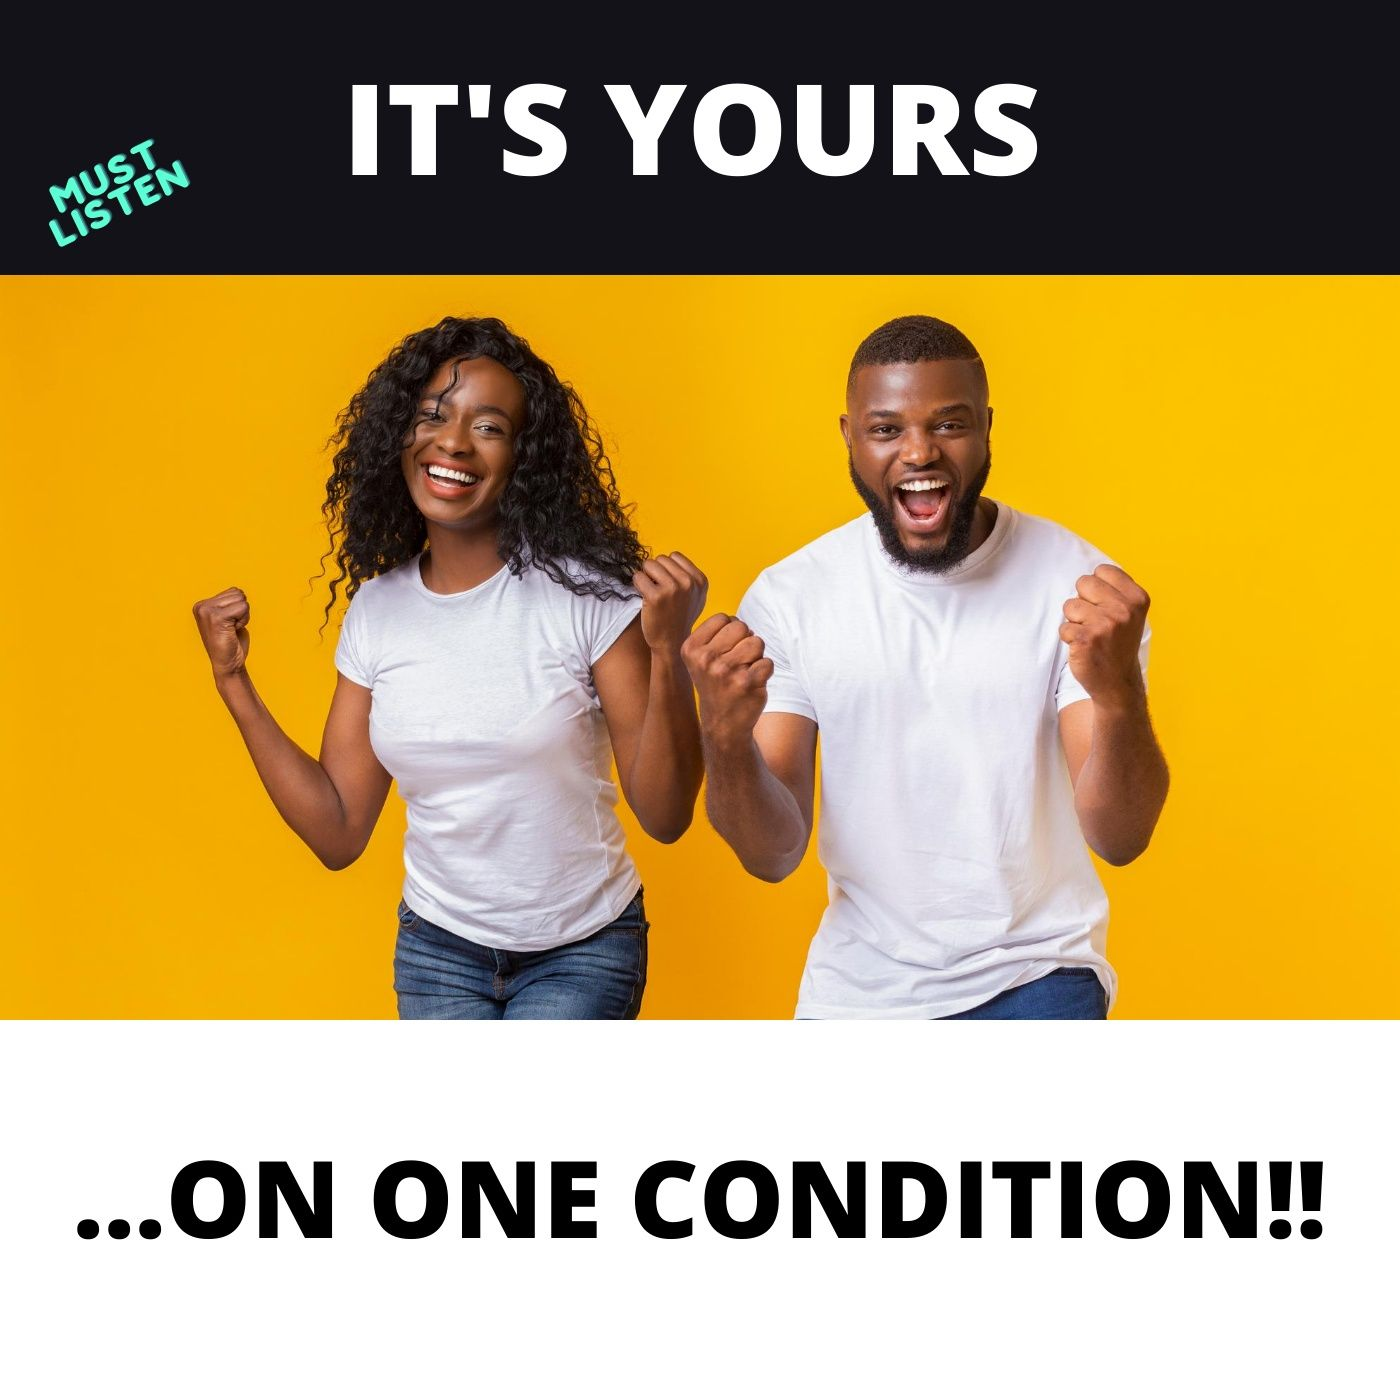 It's Yours. On One Condition